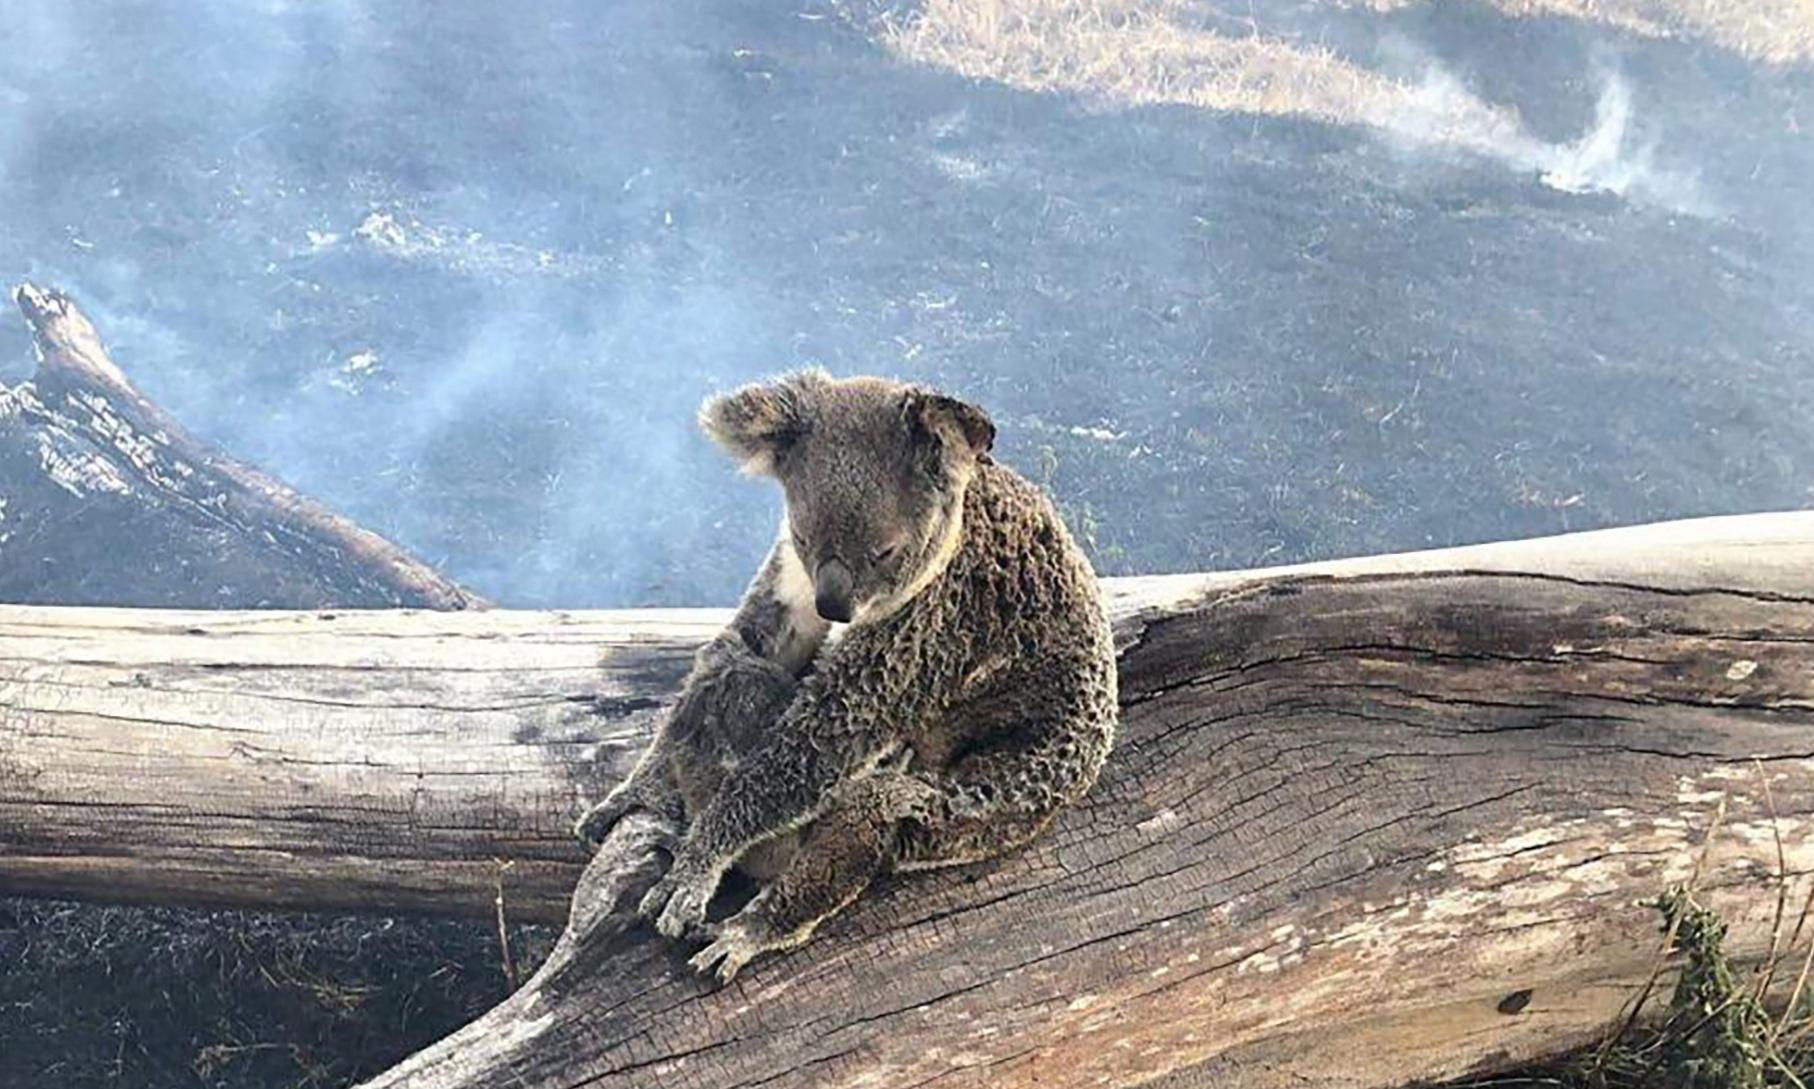 NSW fires so destructive thousands of koala bodies may never be found, ecologist says